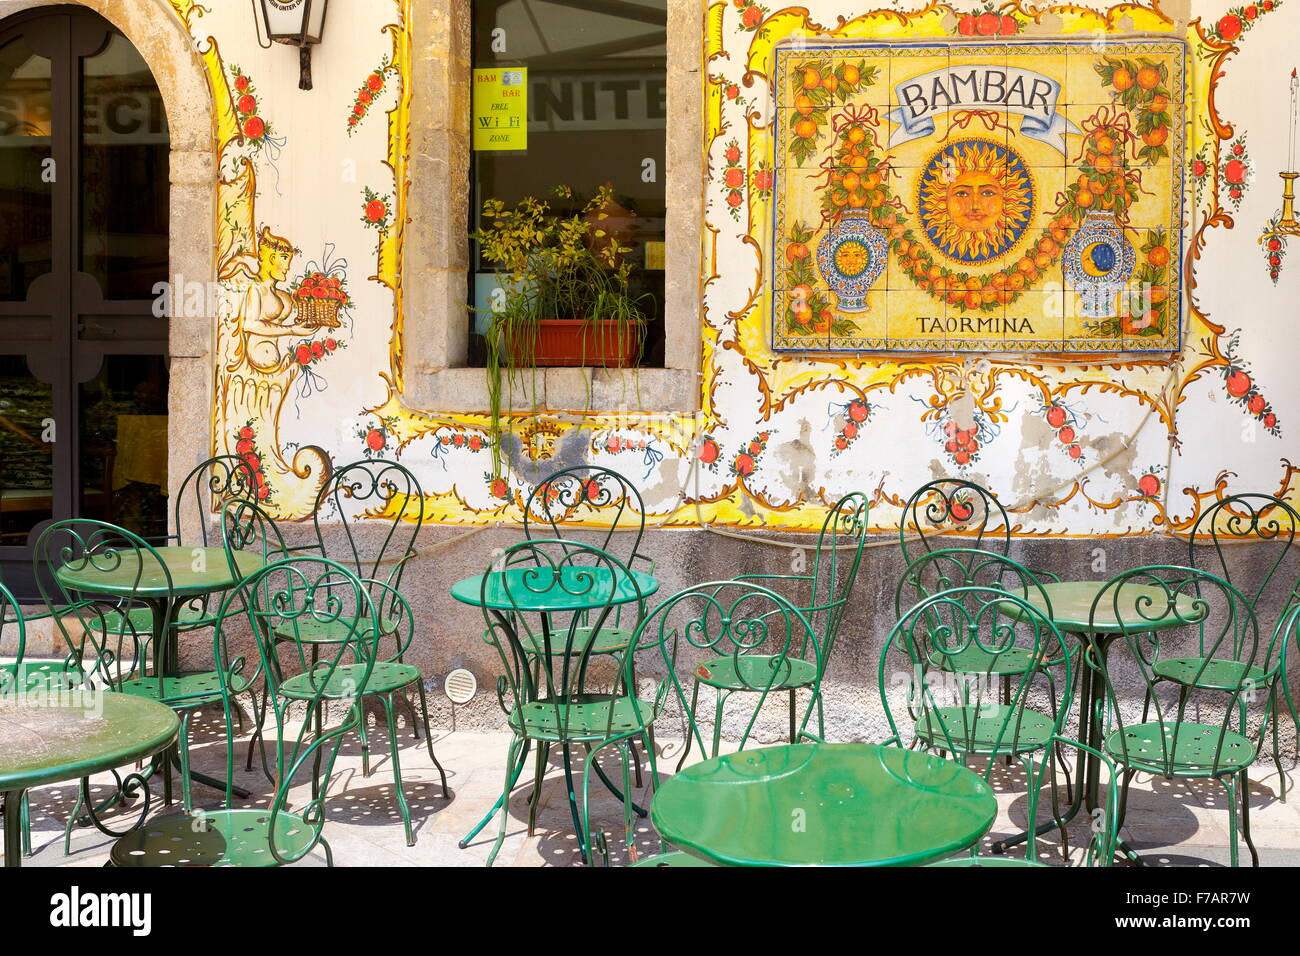 Bar decoration sign, Old Town in Taormina, Sicily, Italy - Stock Image